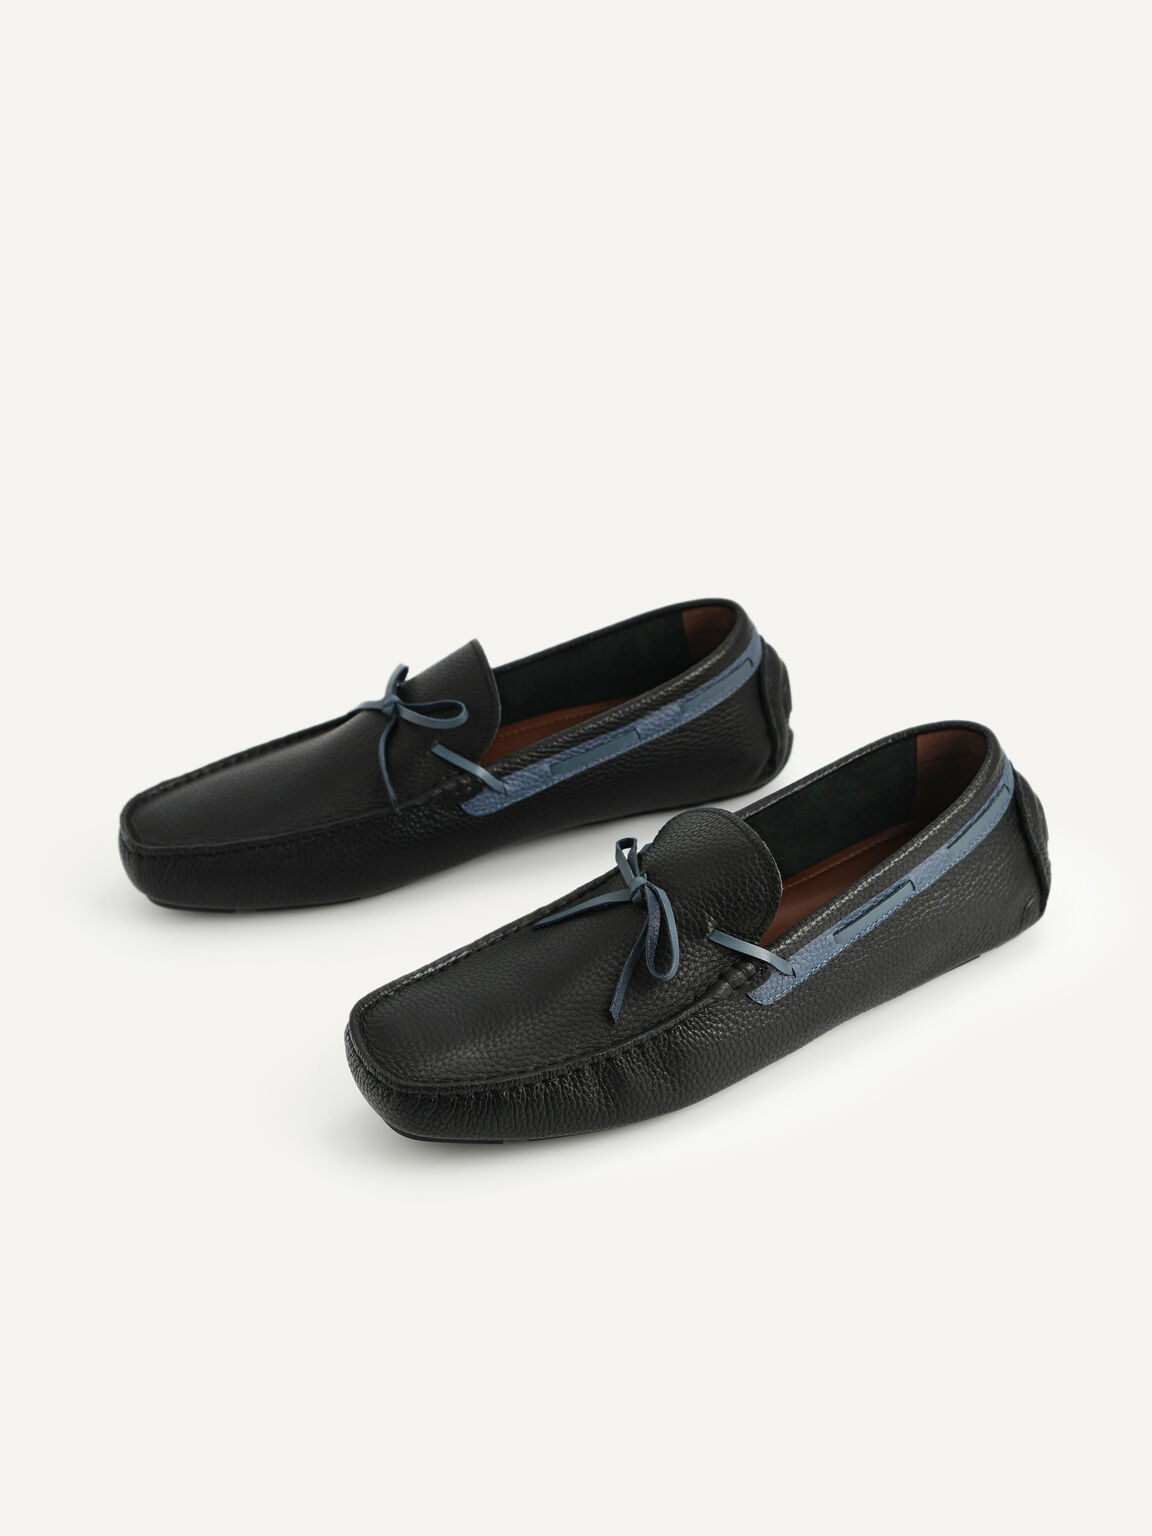 Textured Leather Moccasins with Bow, Black, hi-res